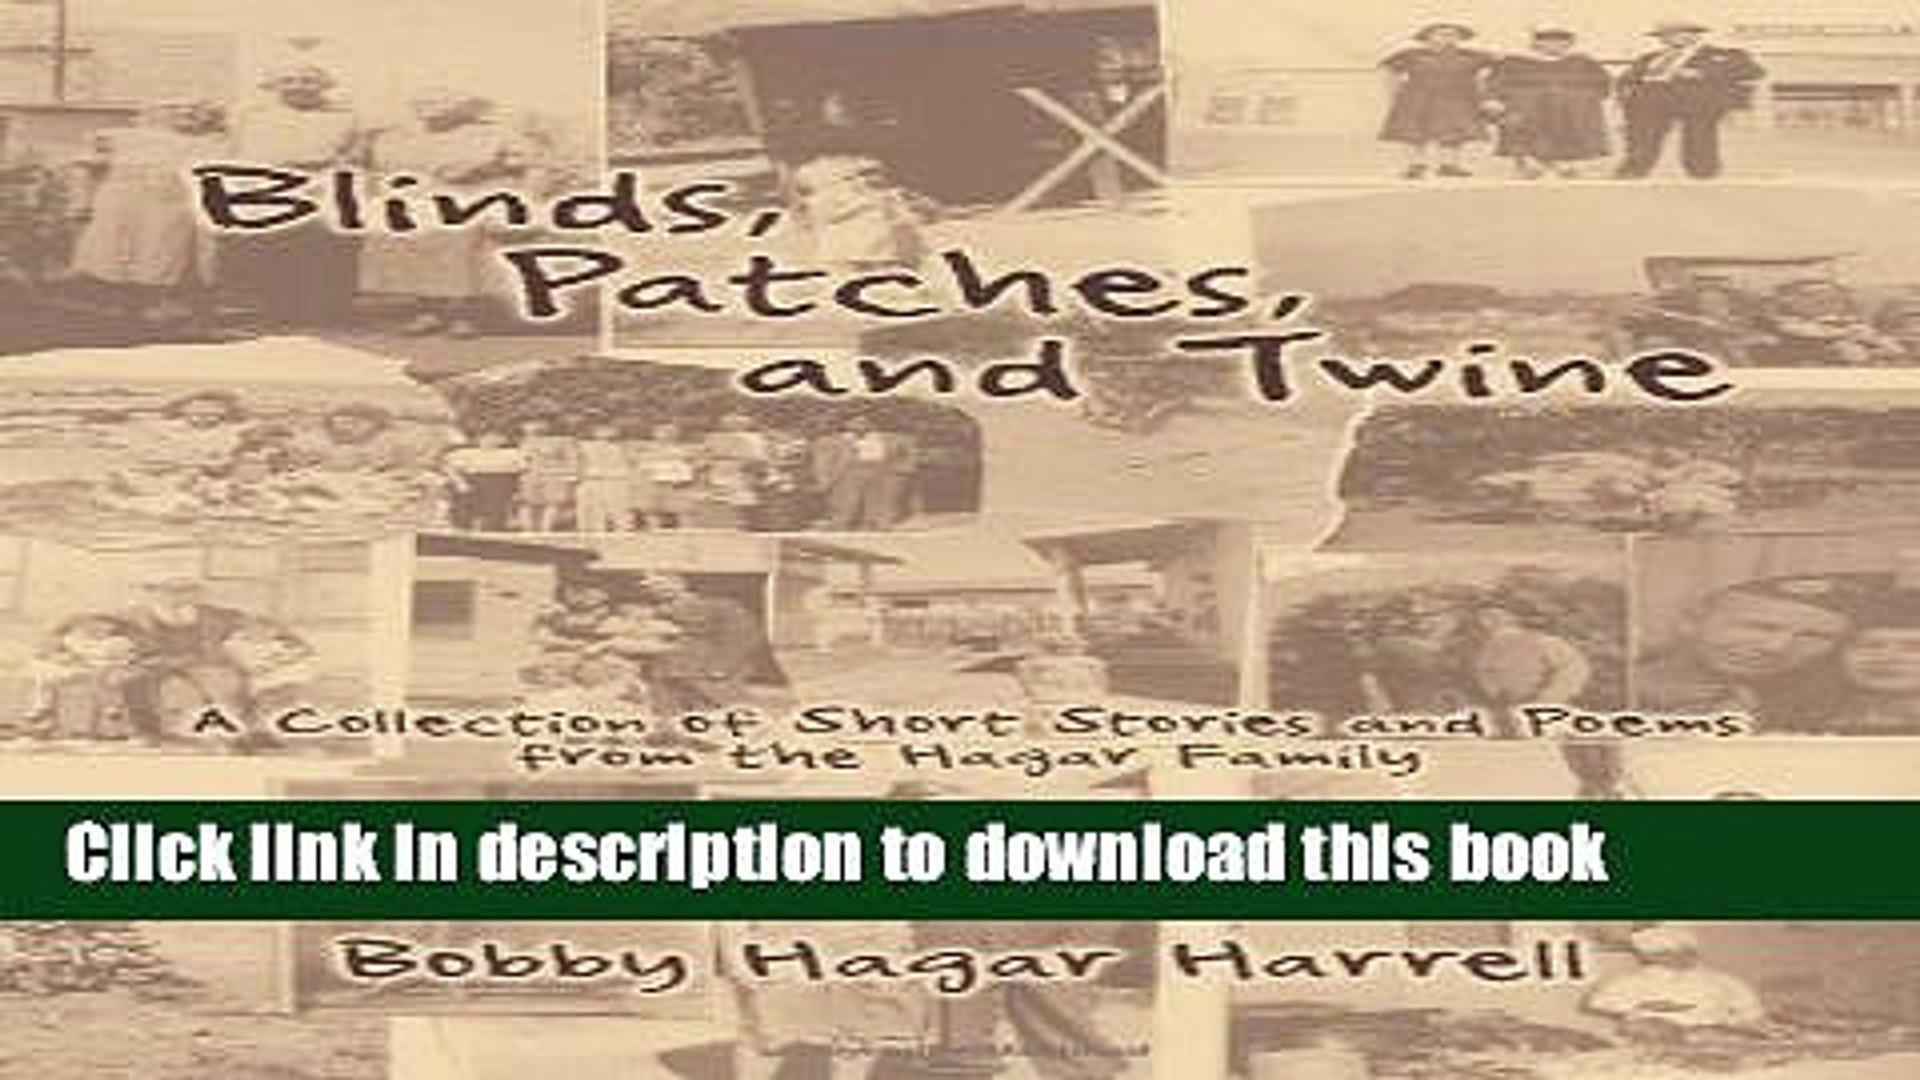 Download Blinds, Patches and Twine: A Collection of Short Stories and Poems from the Hagar Family